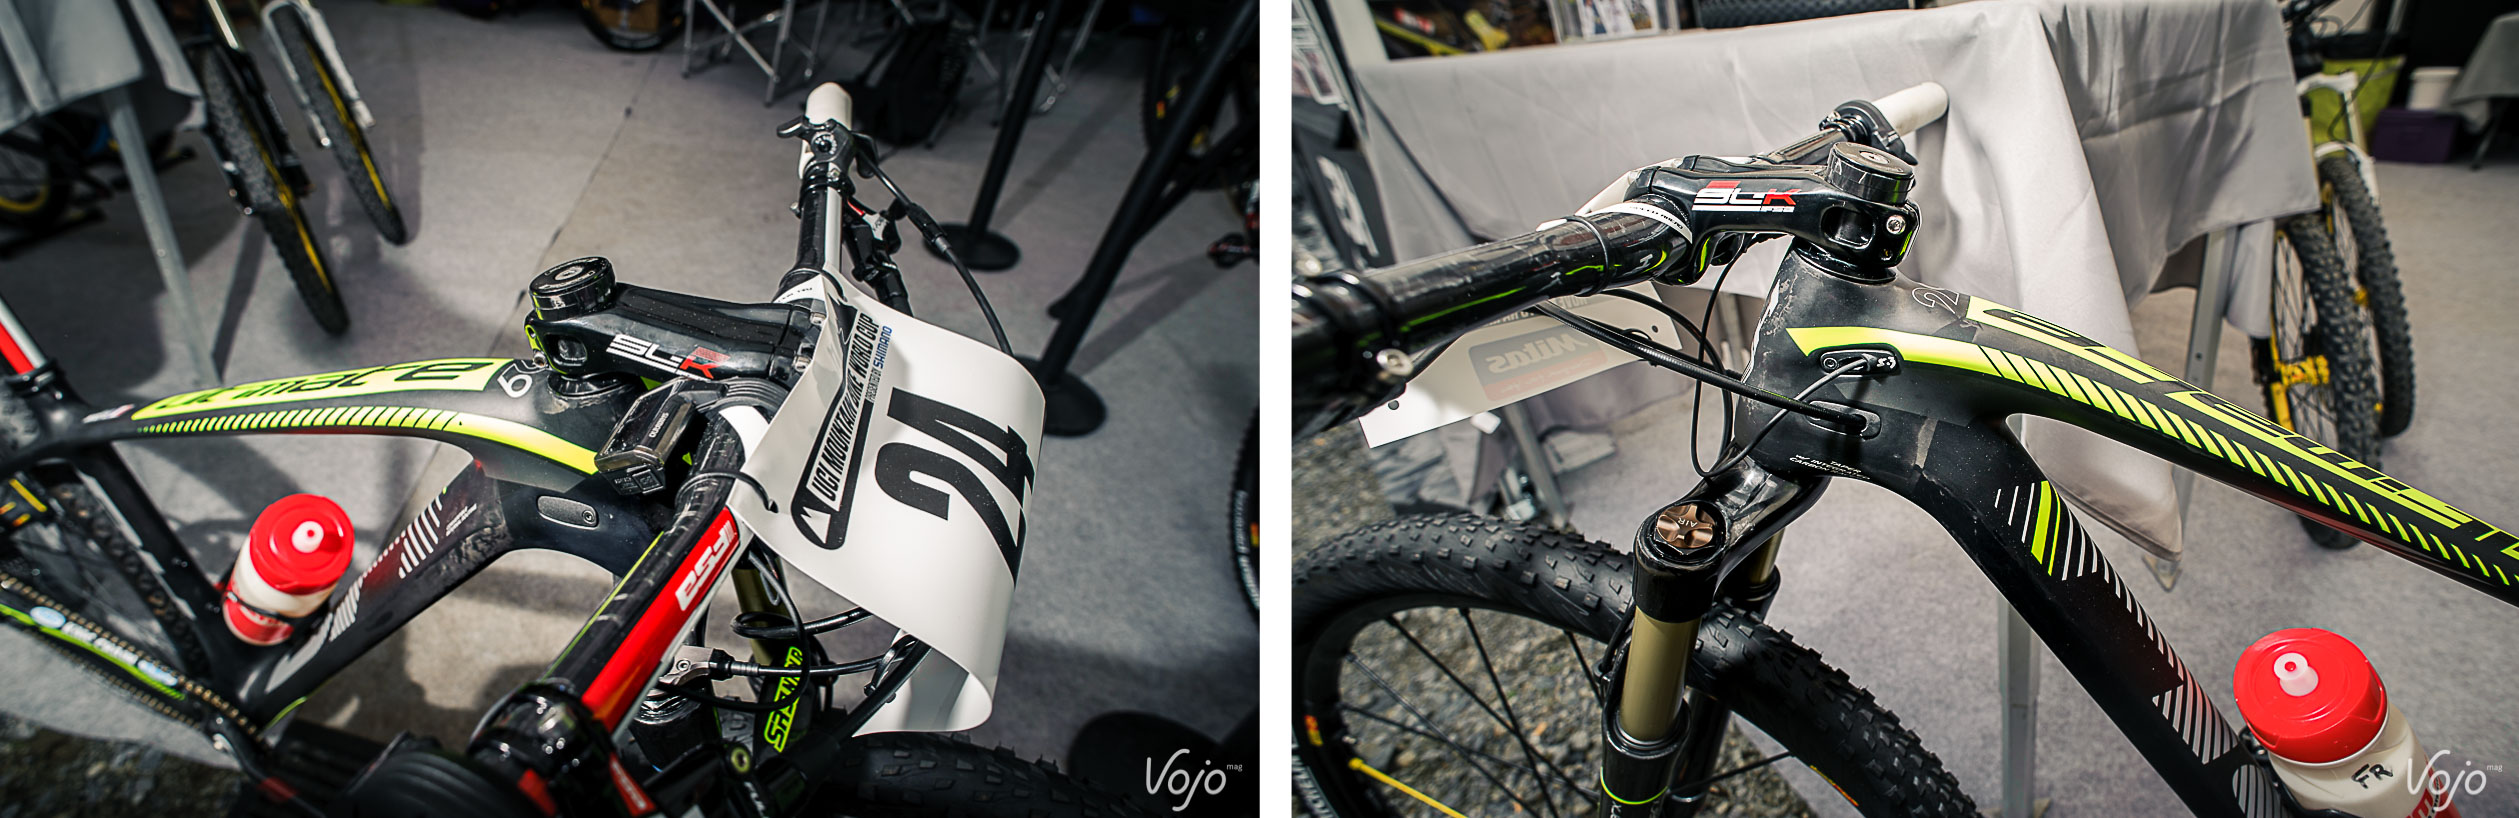 1-BH_Ultimate_Team_Maxime_Marotte_World_Cup_Bike_Copyright_OBeart_VojoMag-1